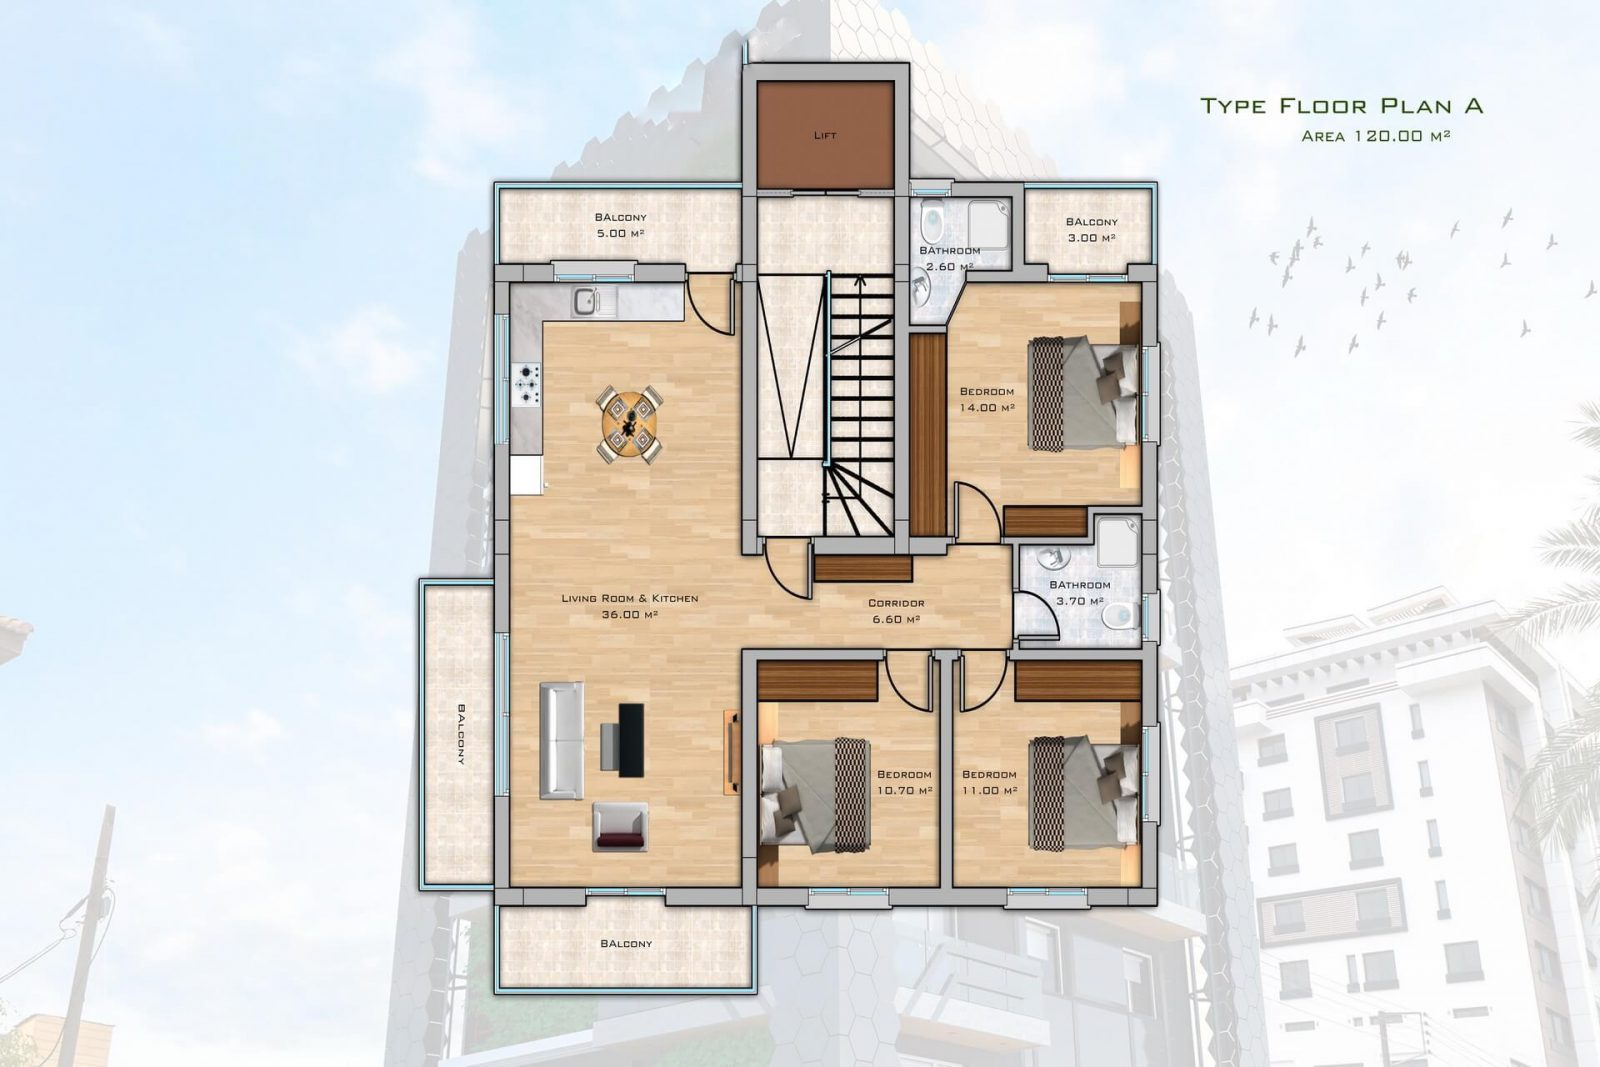 3 Bedroom Apartment of 120m² in City Center of Kyrenia